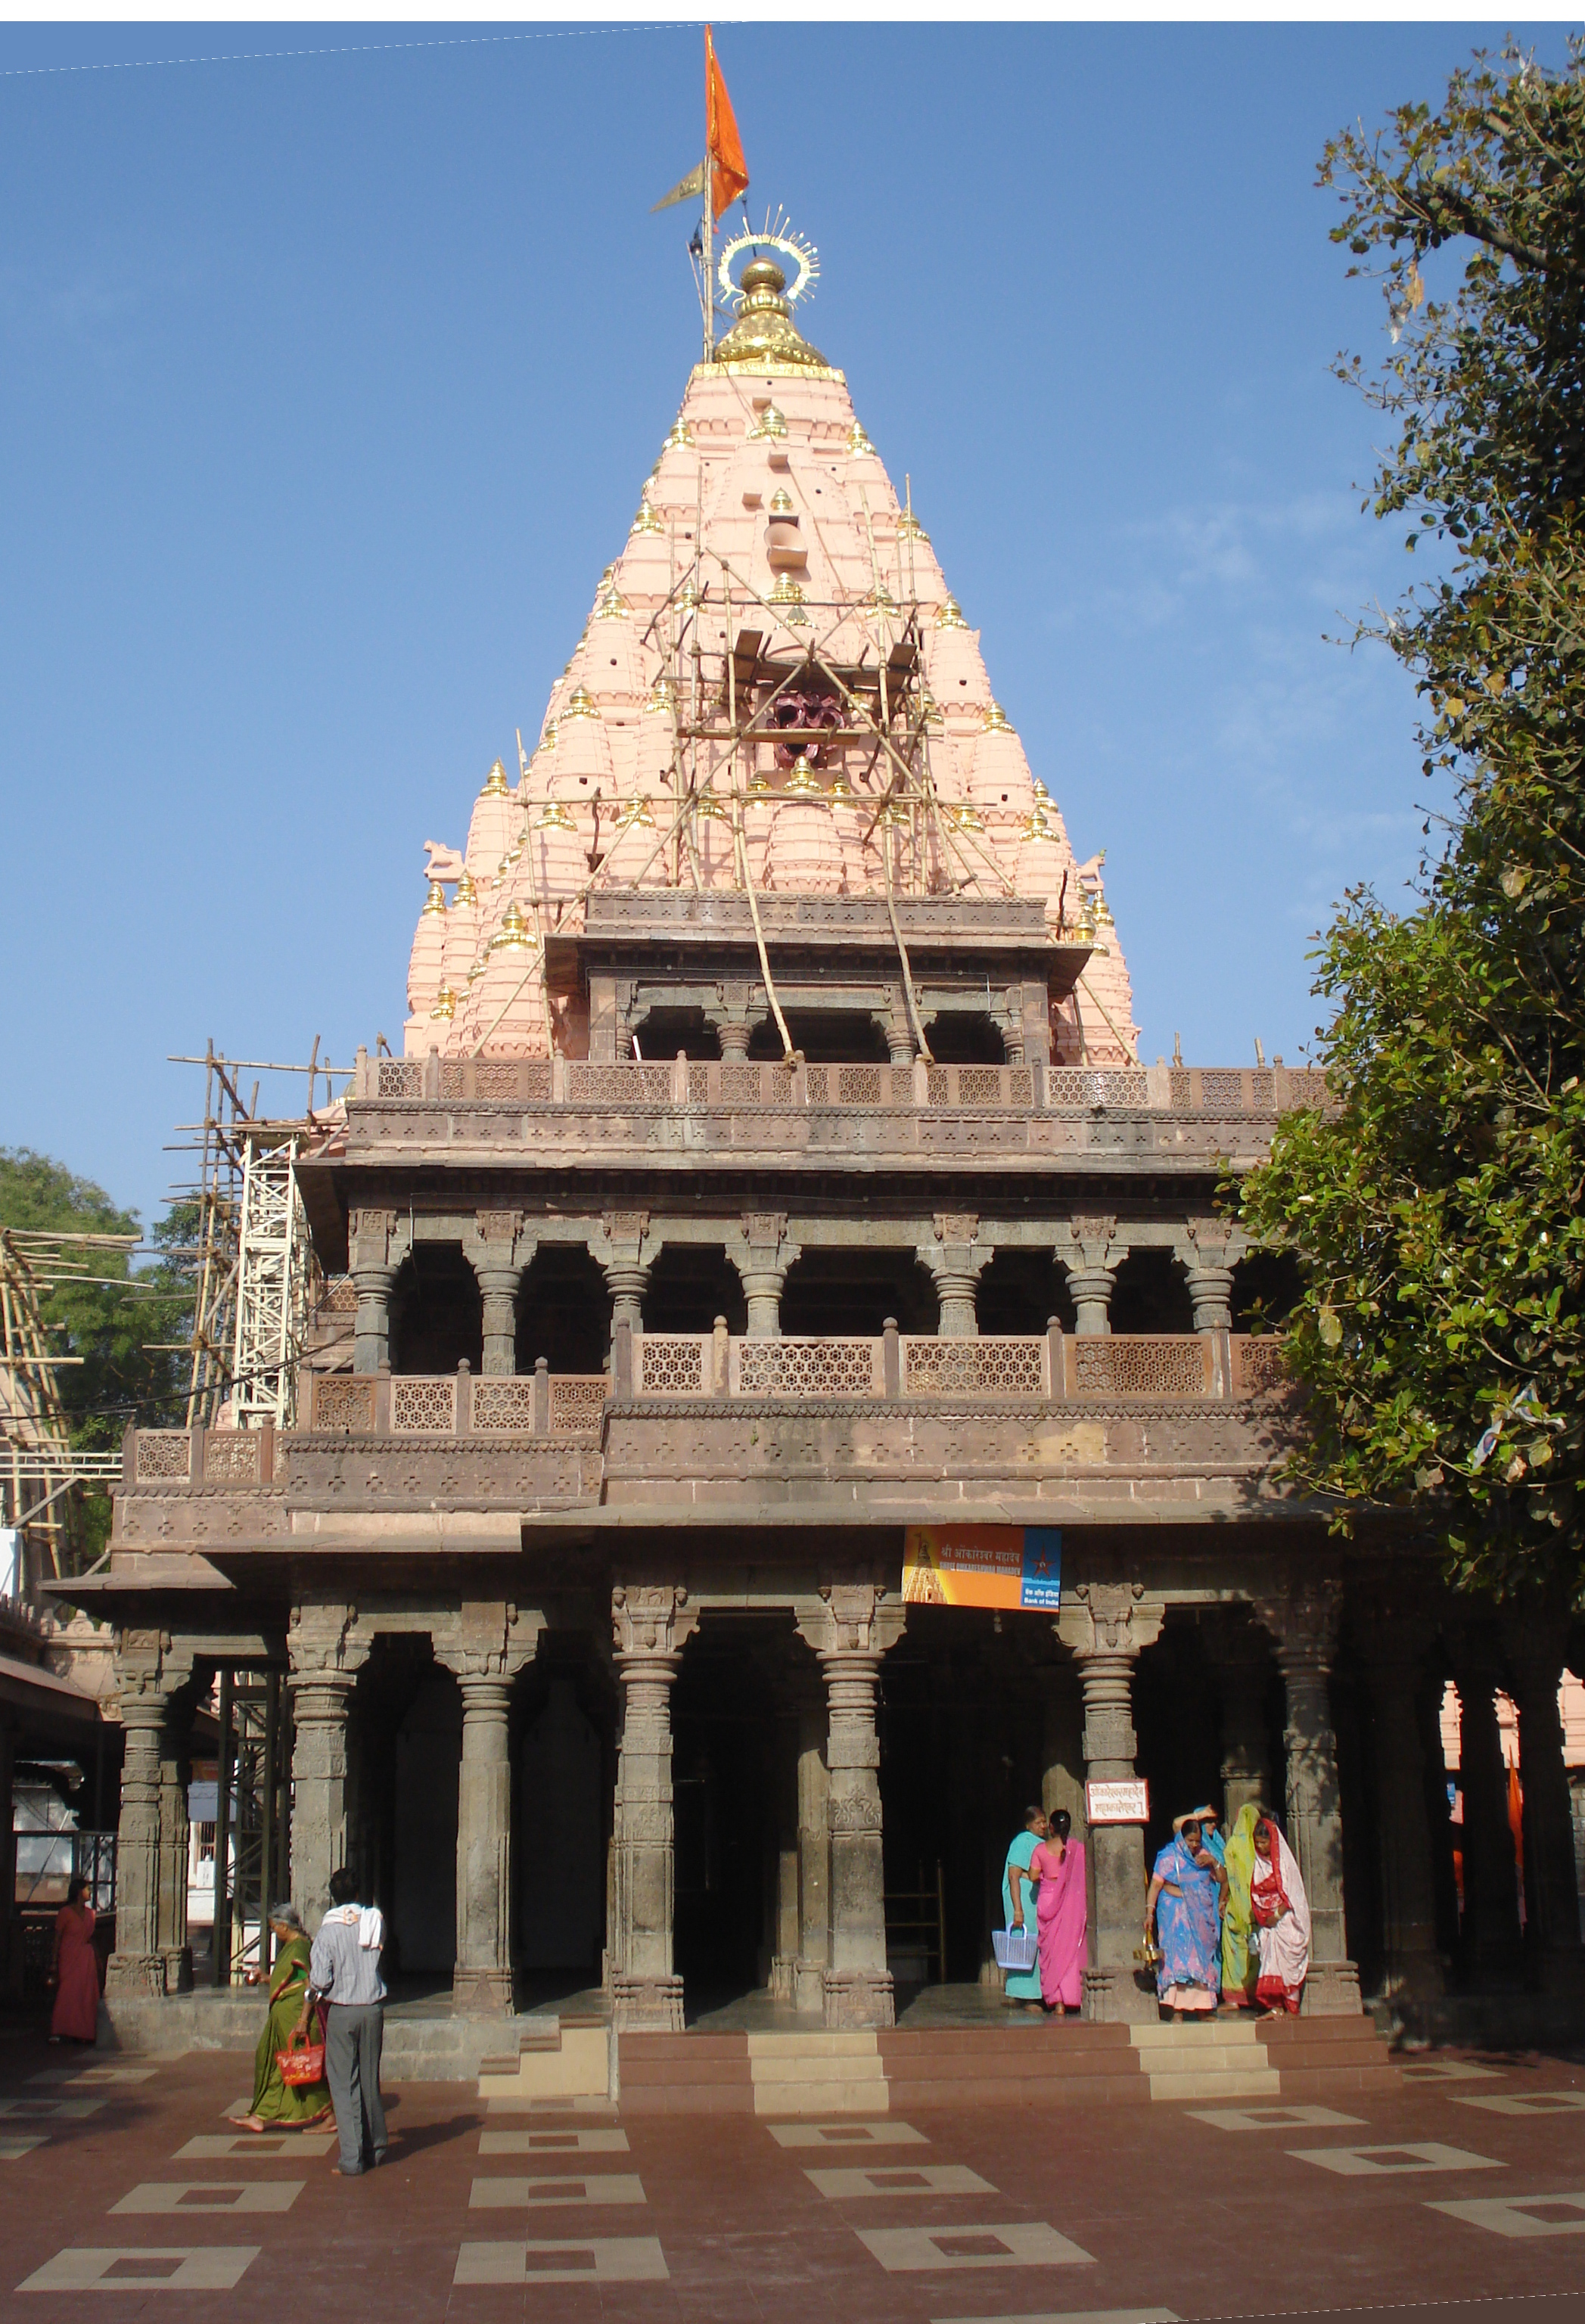 File:Mahakal Temple Ujjain.JPG - Wikipedia, the free encyclopedia